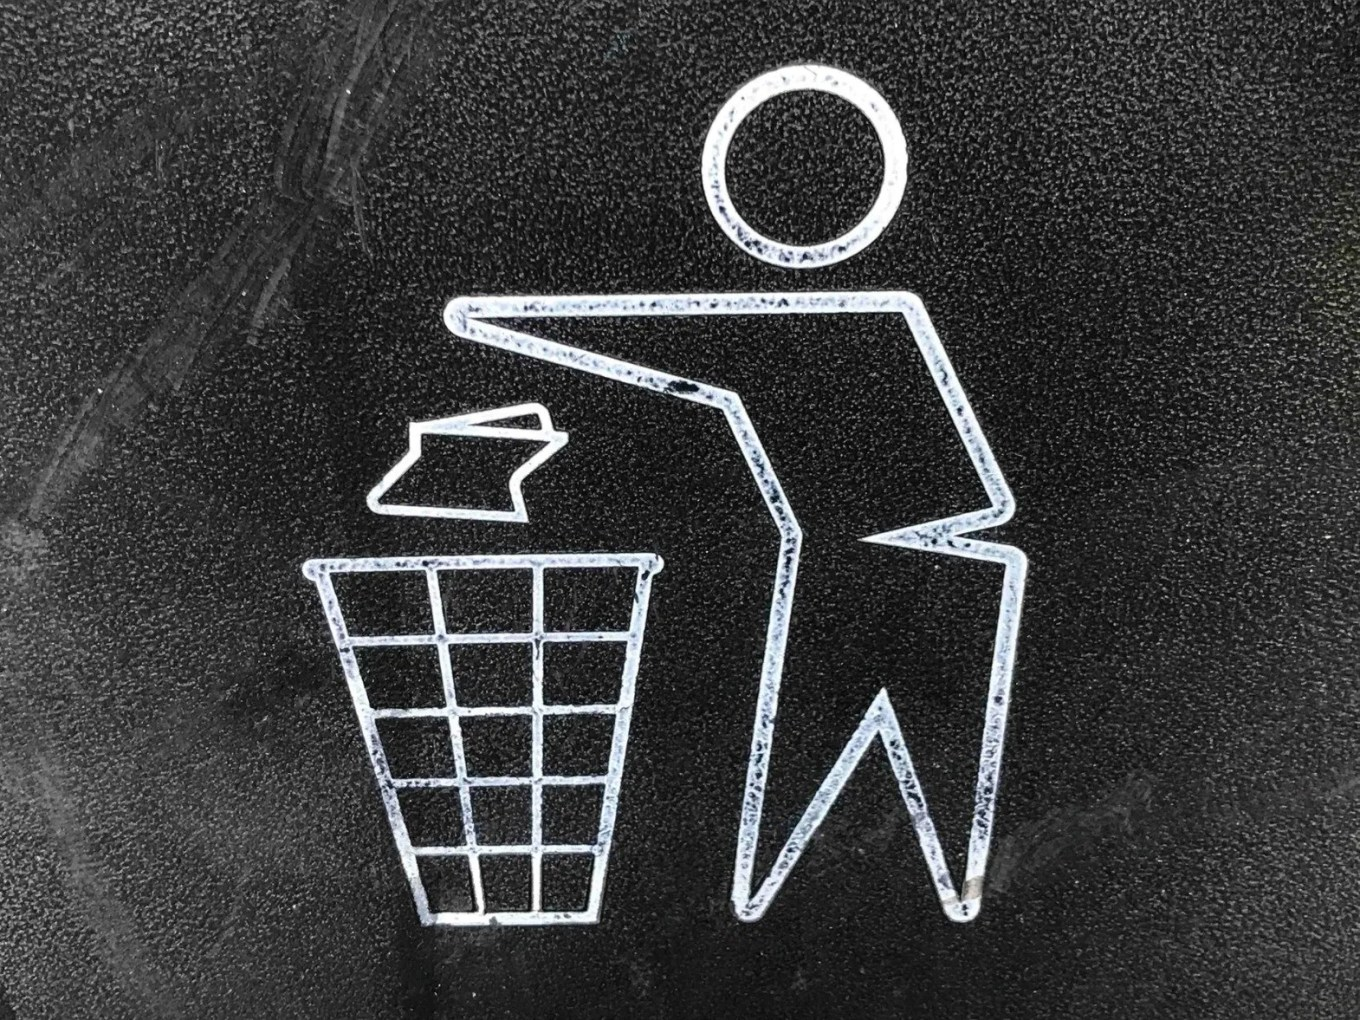 How to Set Up a Work Recycling Program